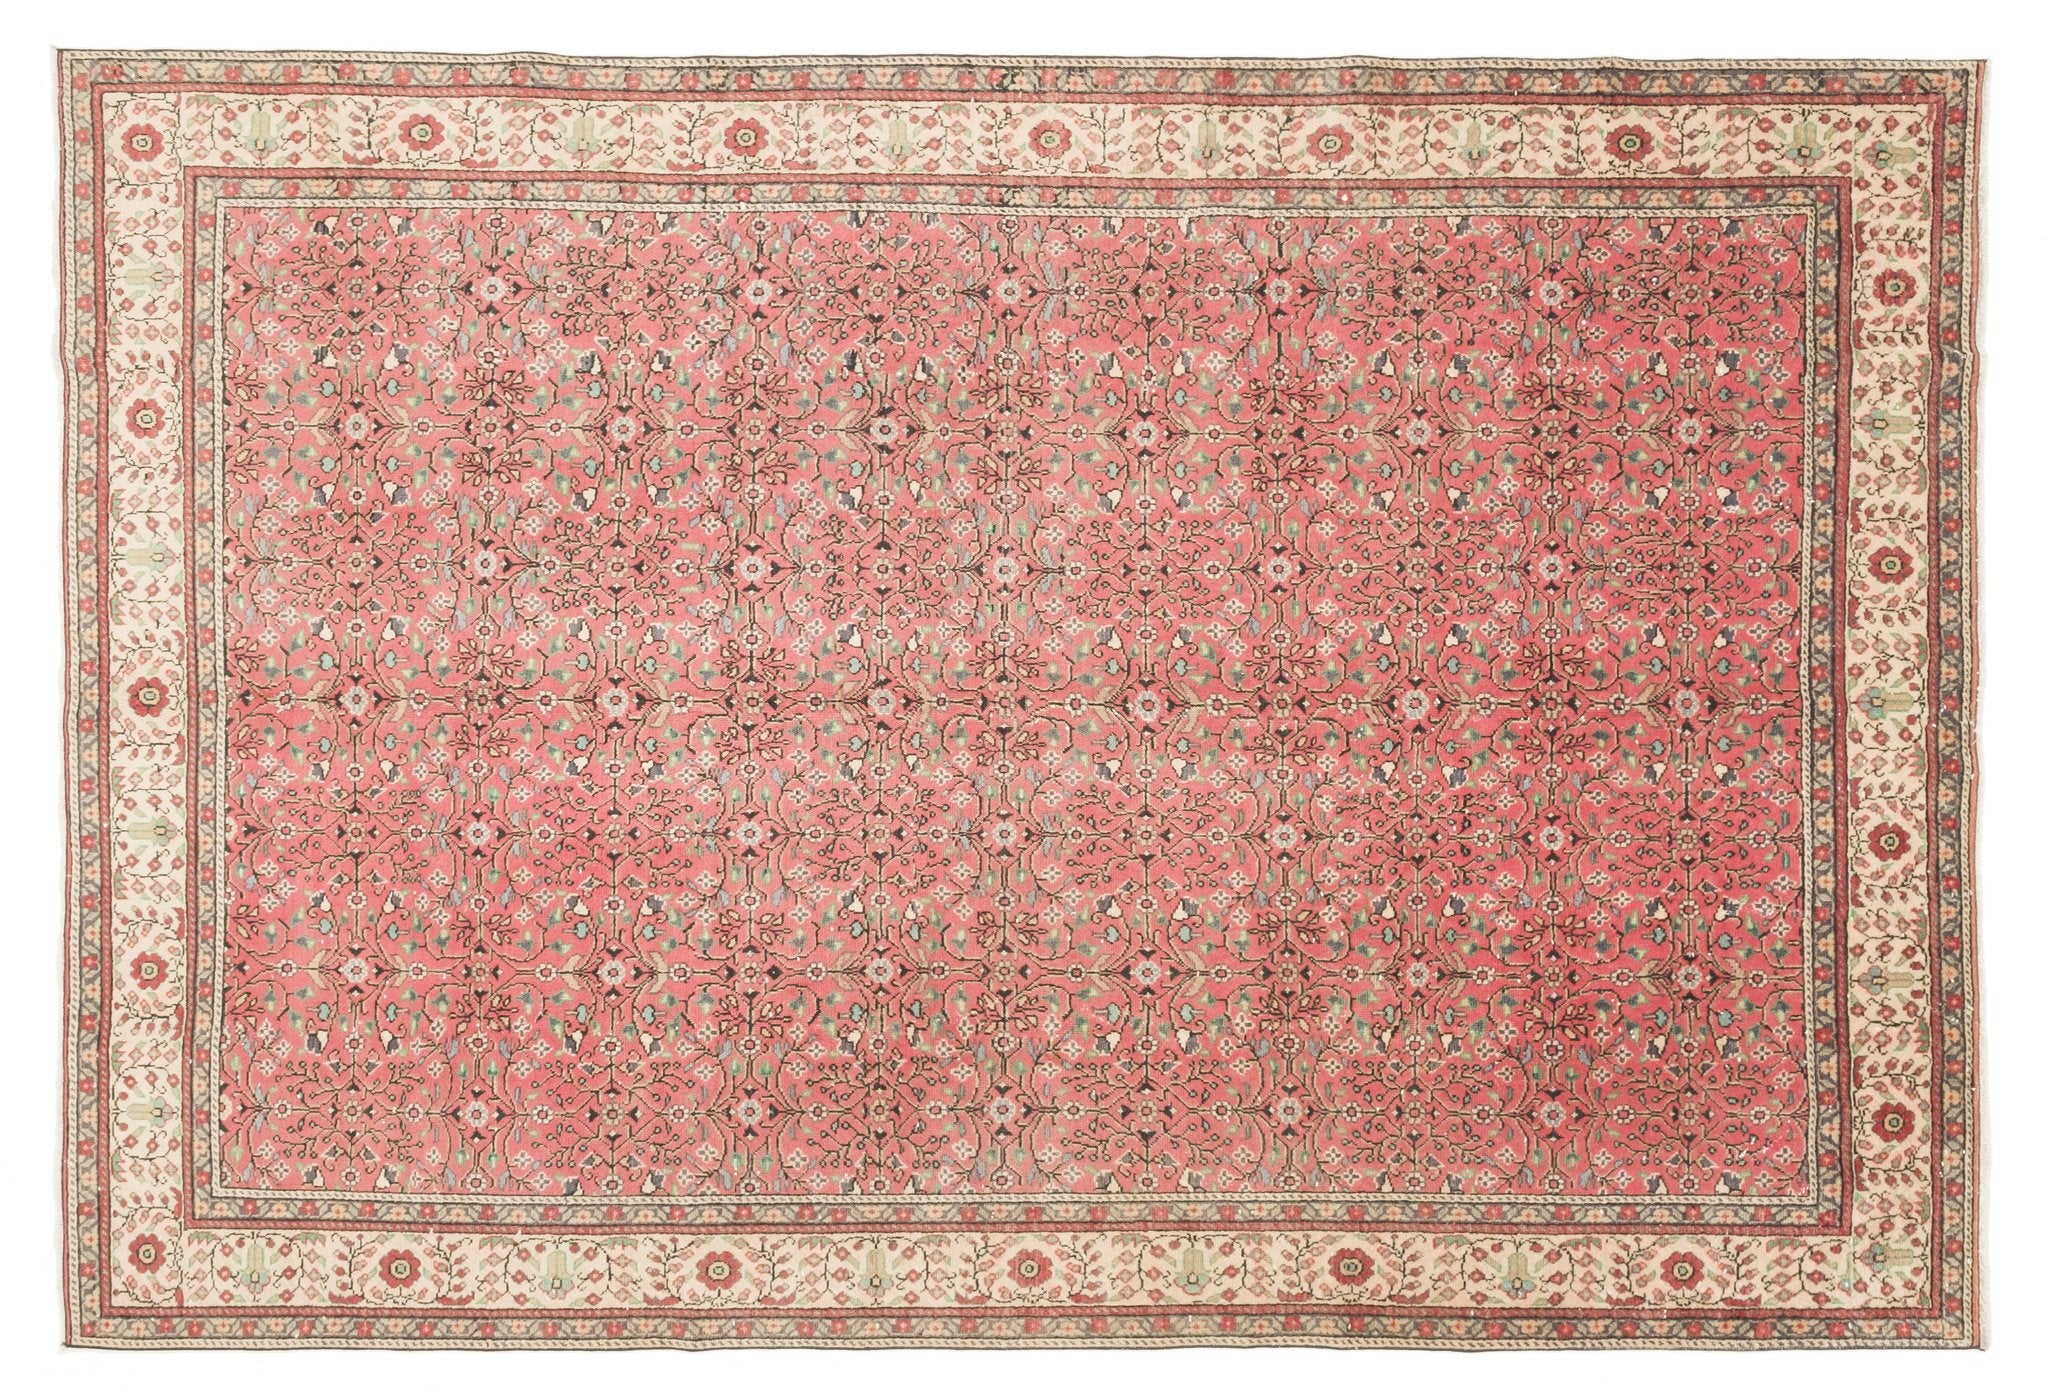 Vintage Turkish Rug Imun